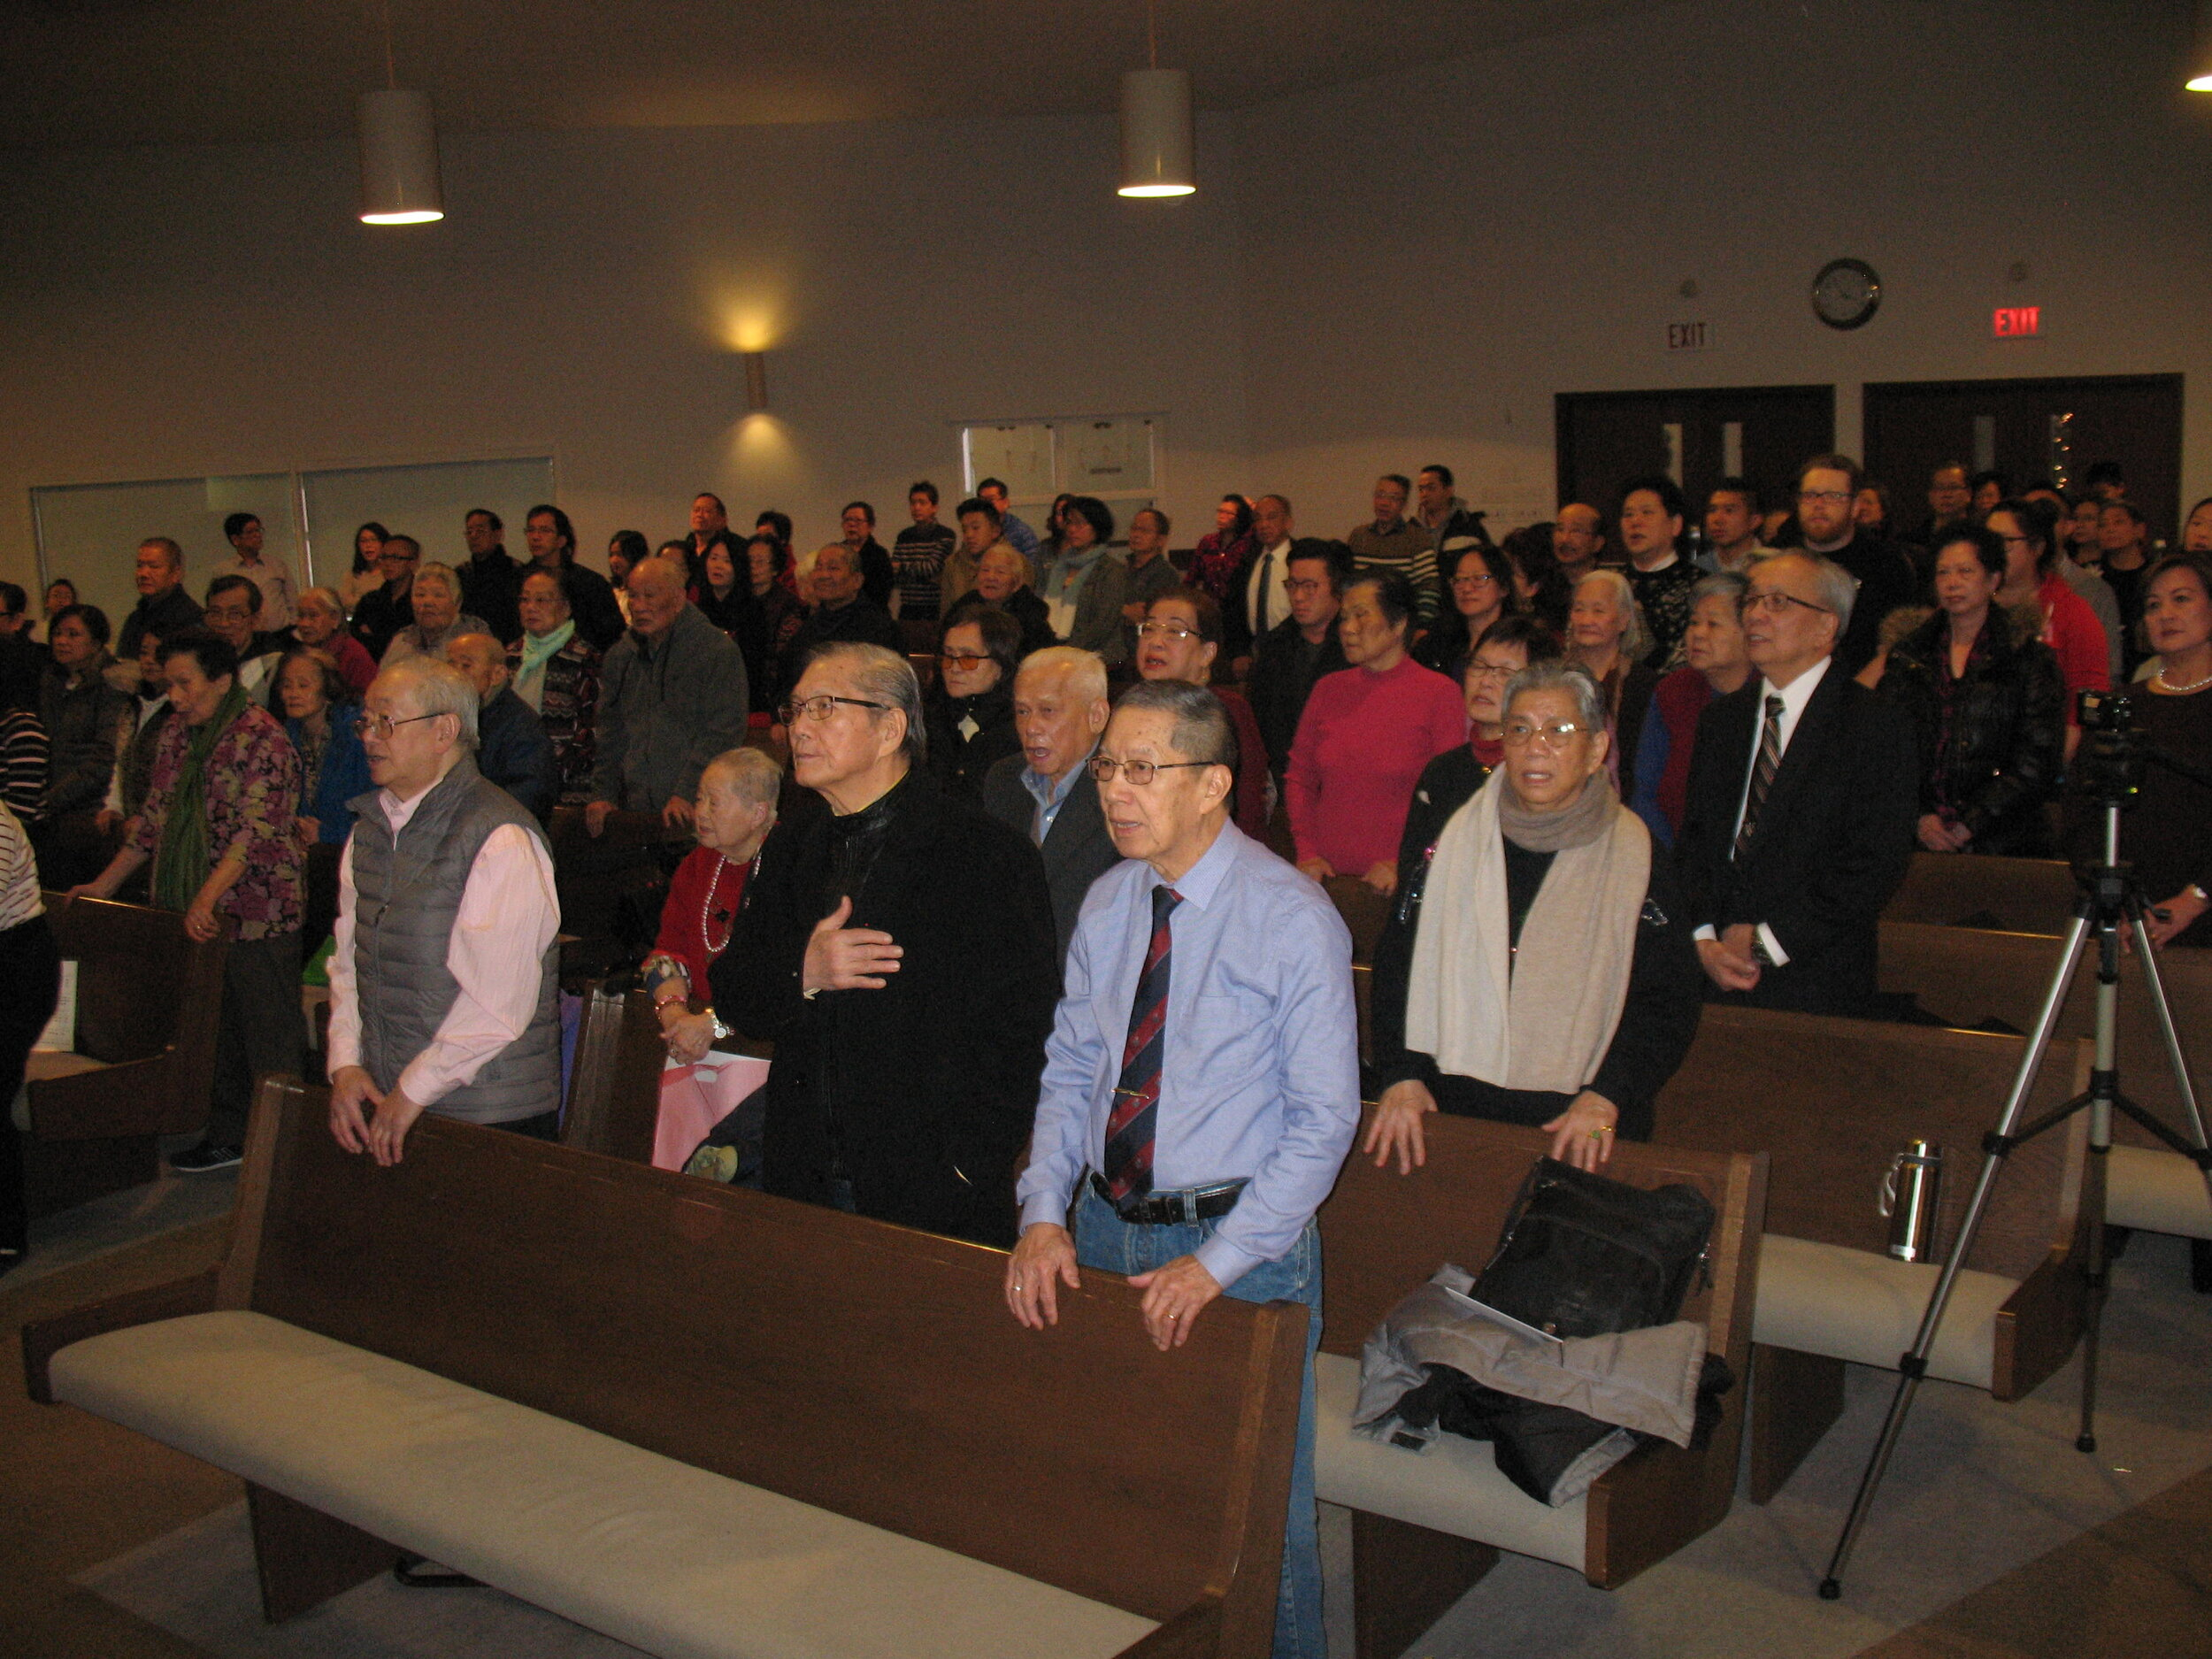 Hakka Alliance is the only Hakka-speaking church in the GTA geared to outreach to seniors in the community,